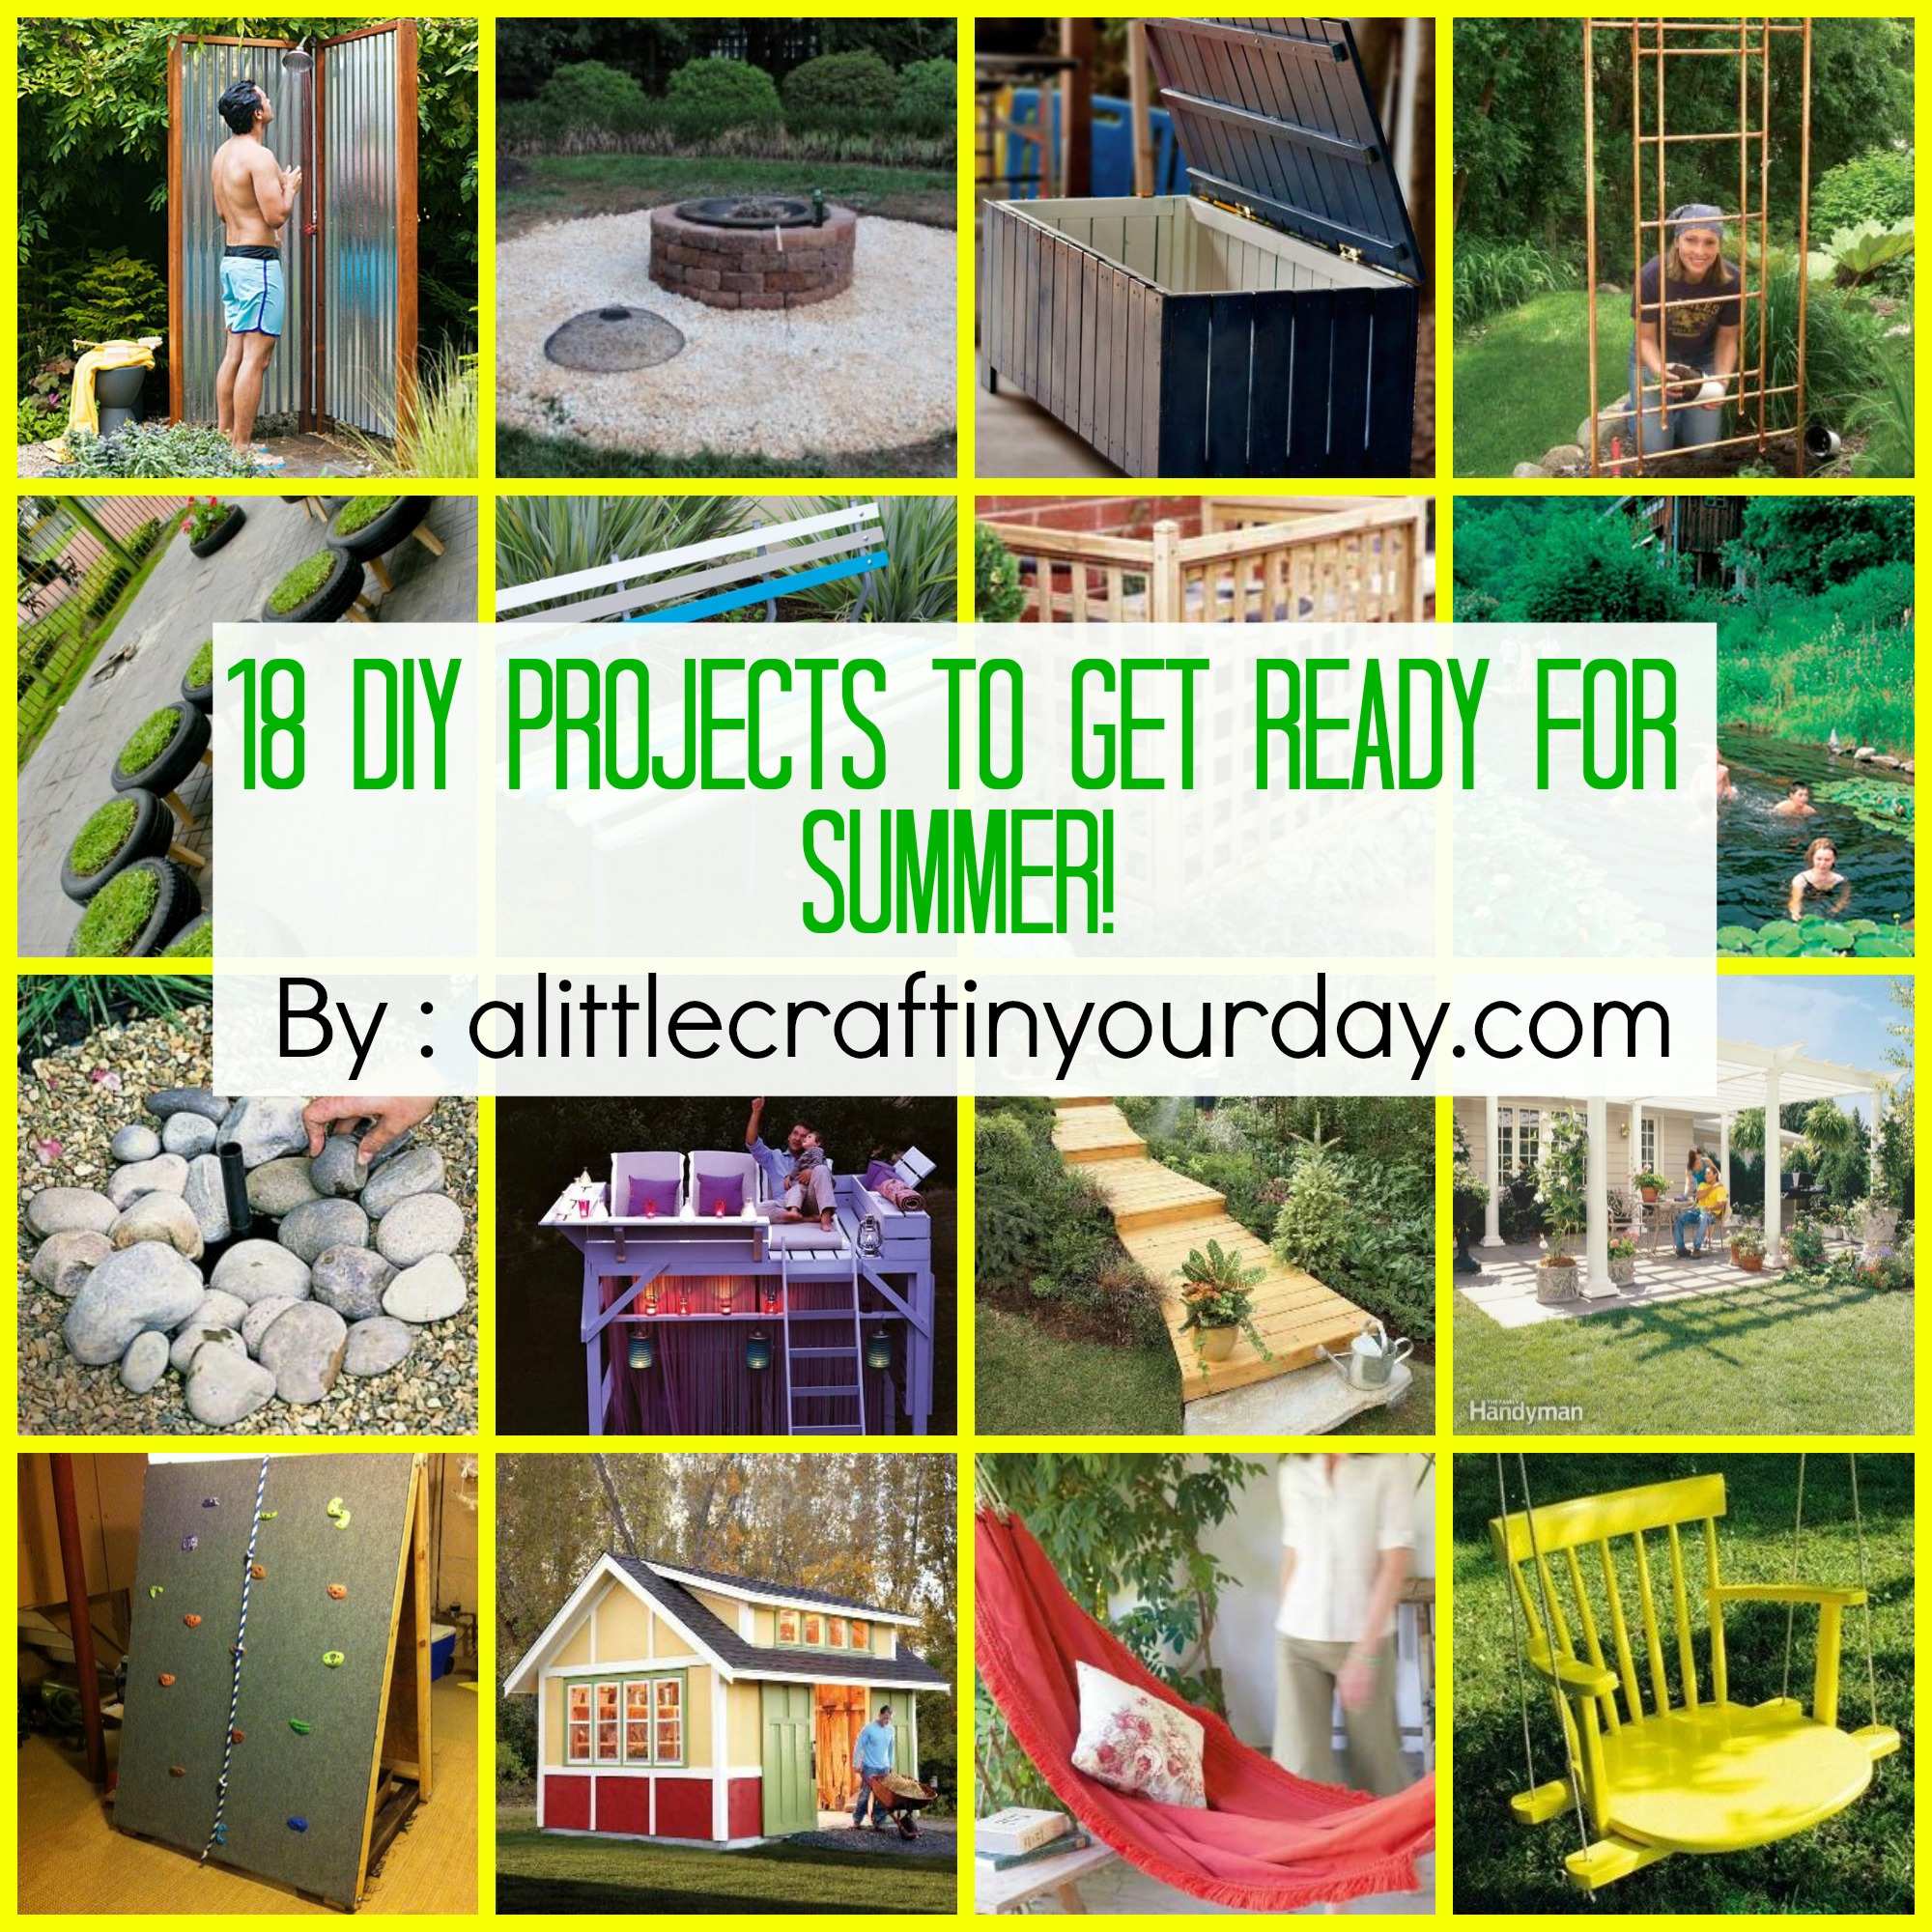 Diy Ideas Summer: 18 DIY Projects To Get Ready For SUMMER!